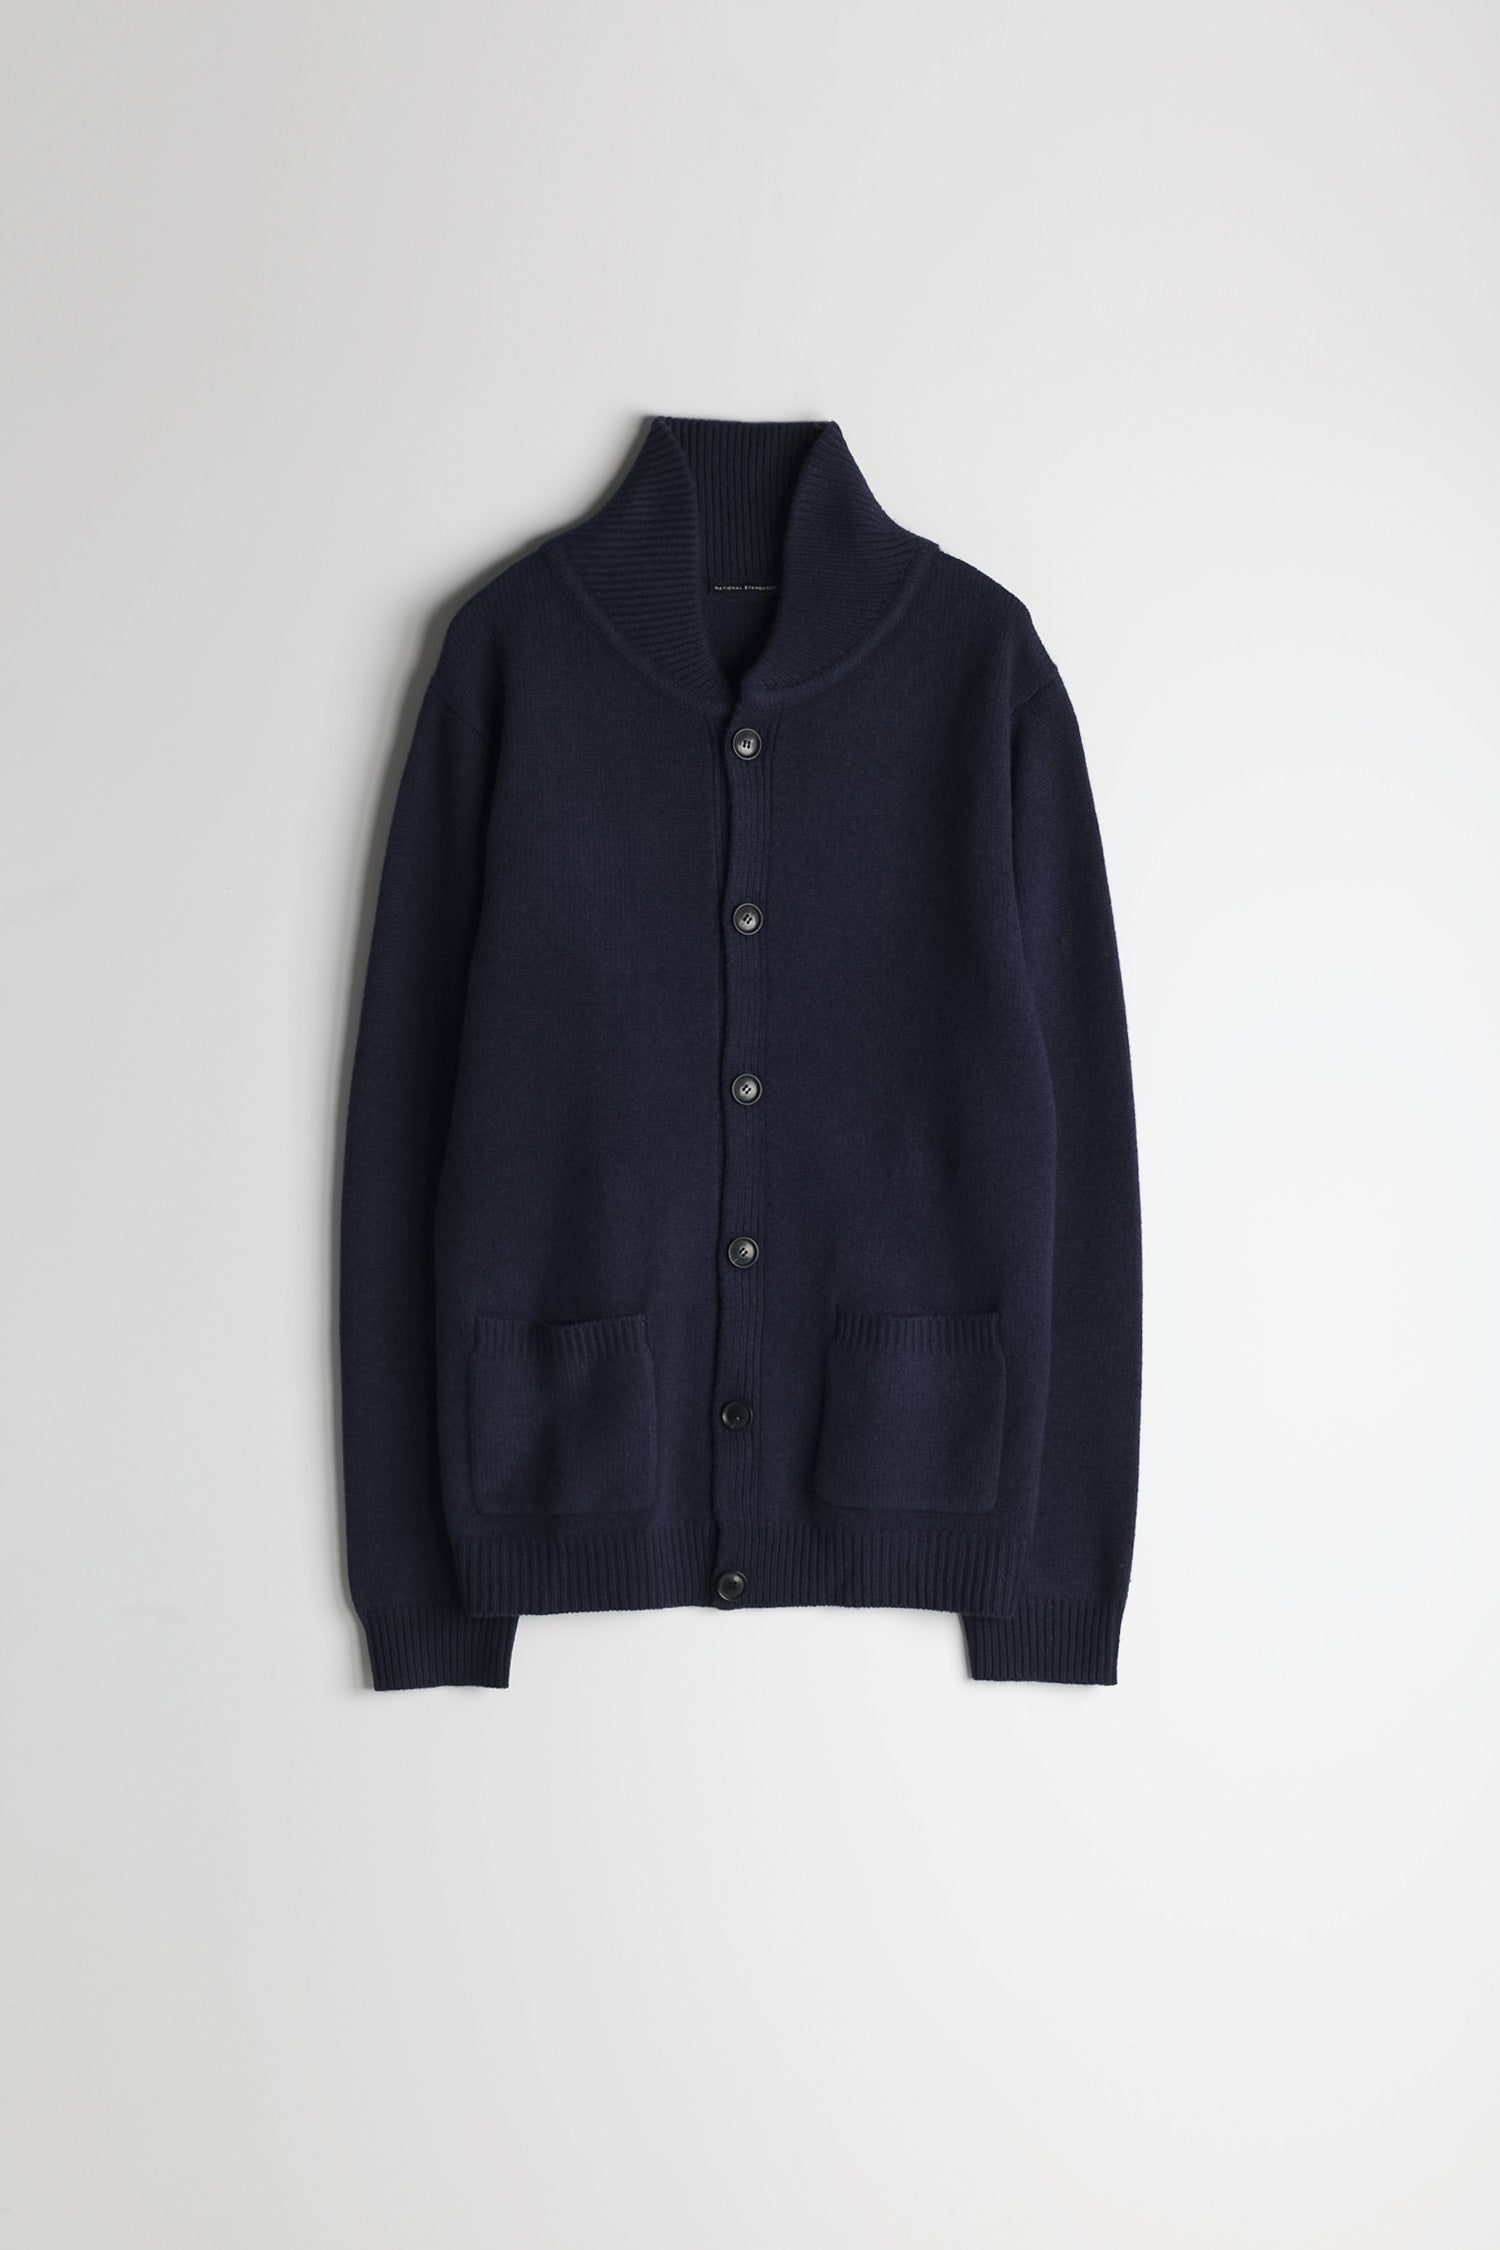 Lambswool Heavy Gauge Cardigan in Navy